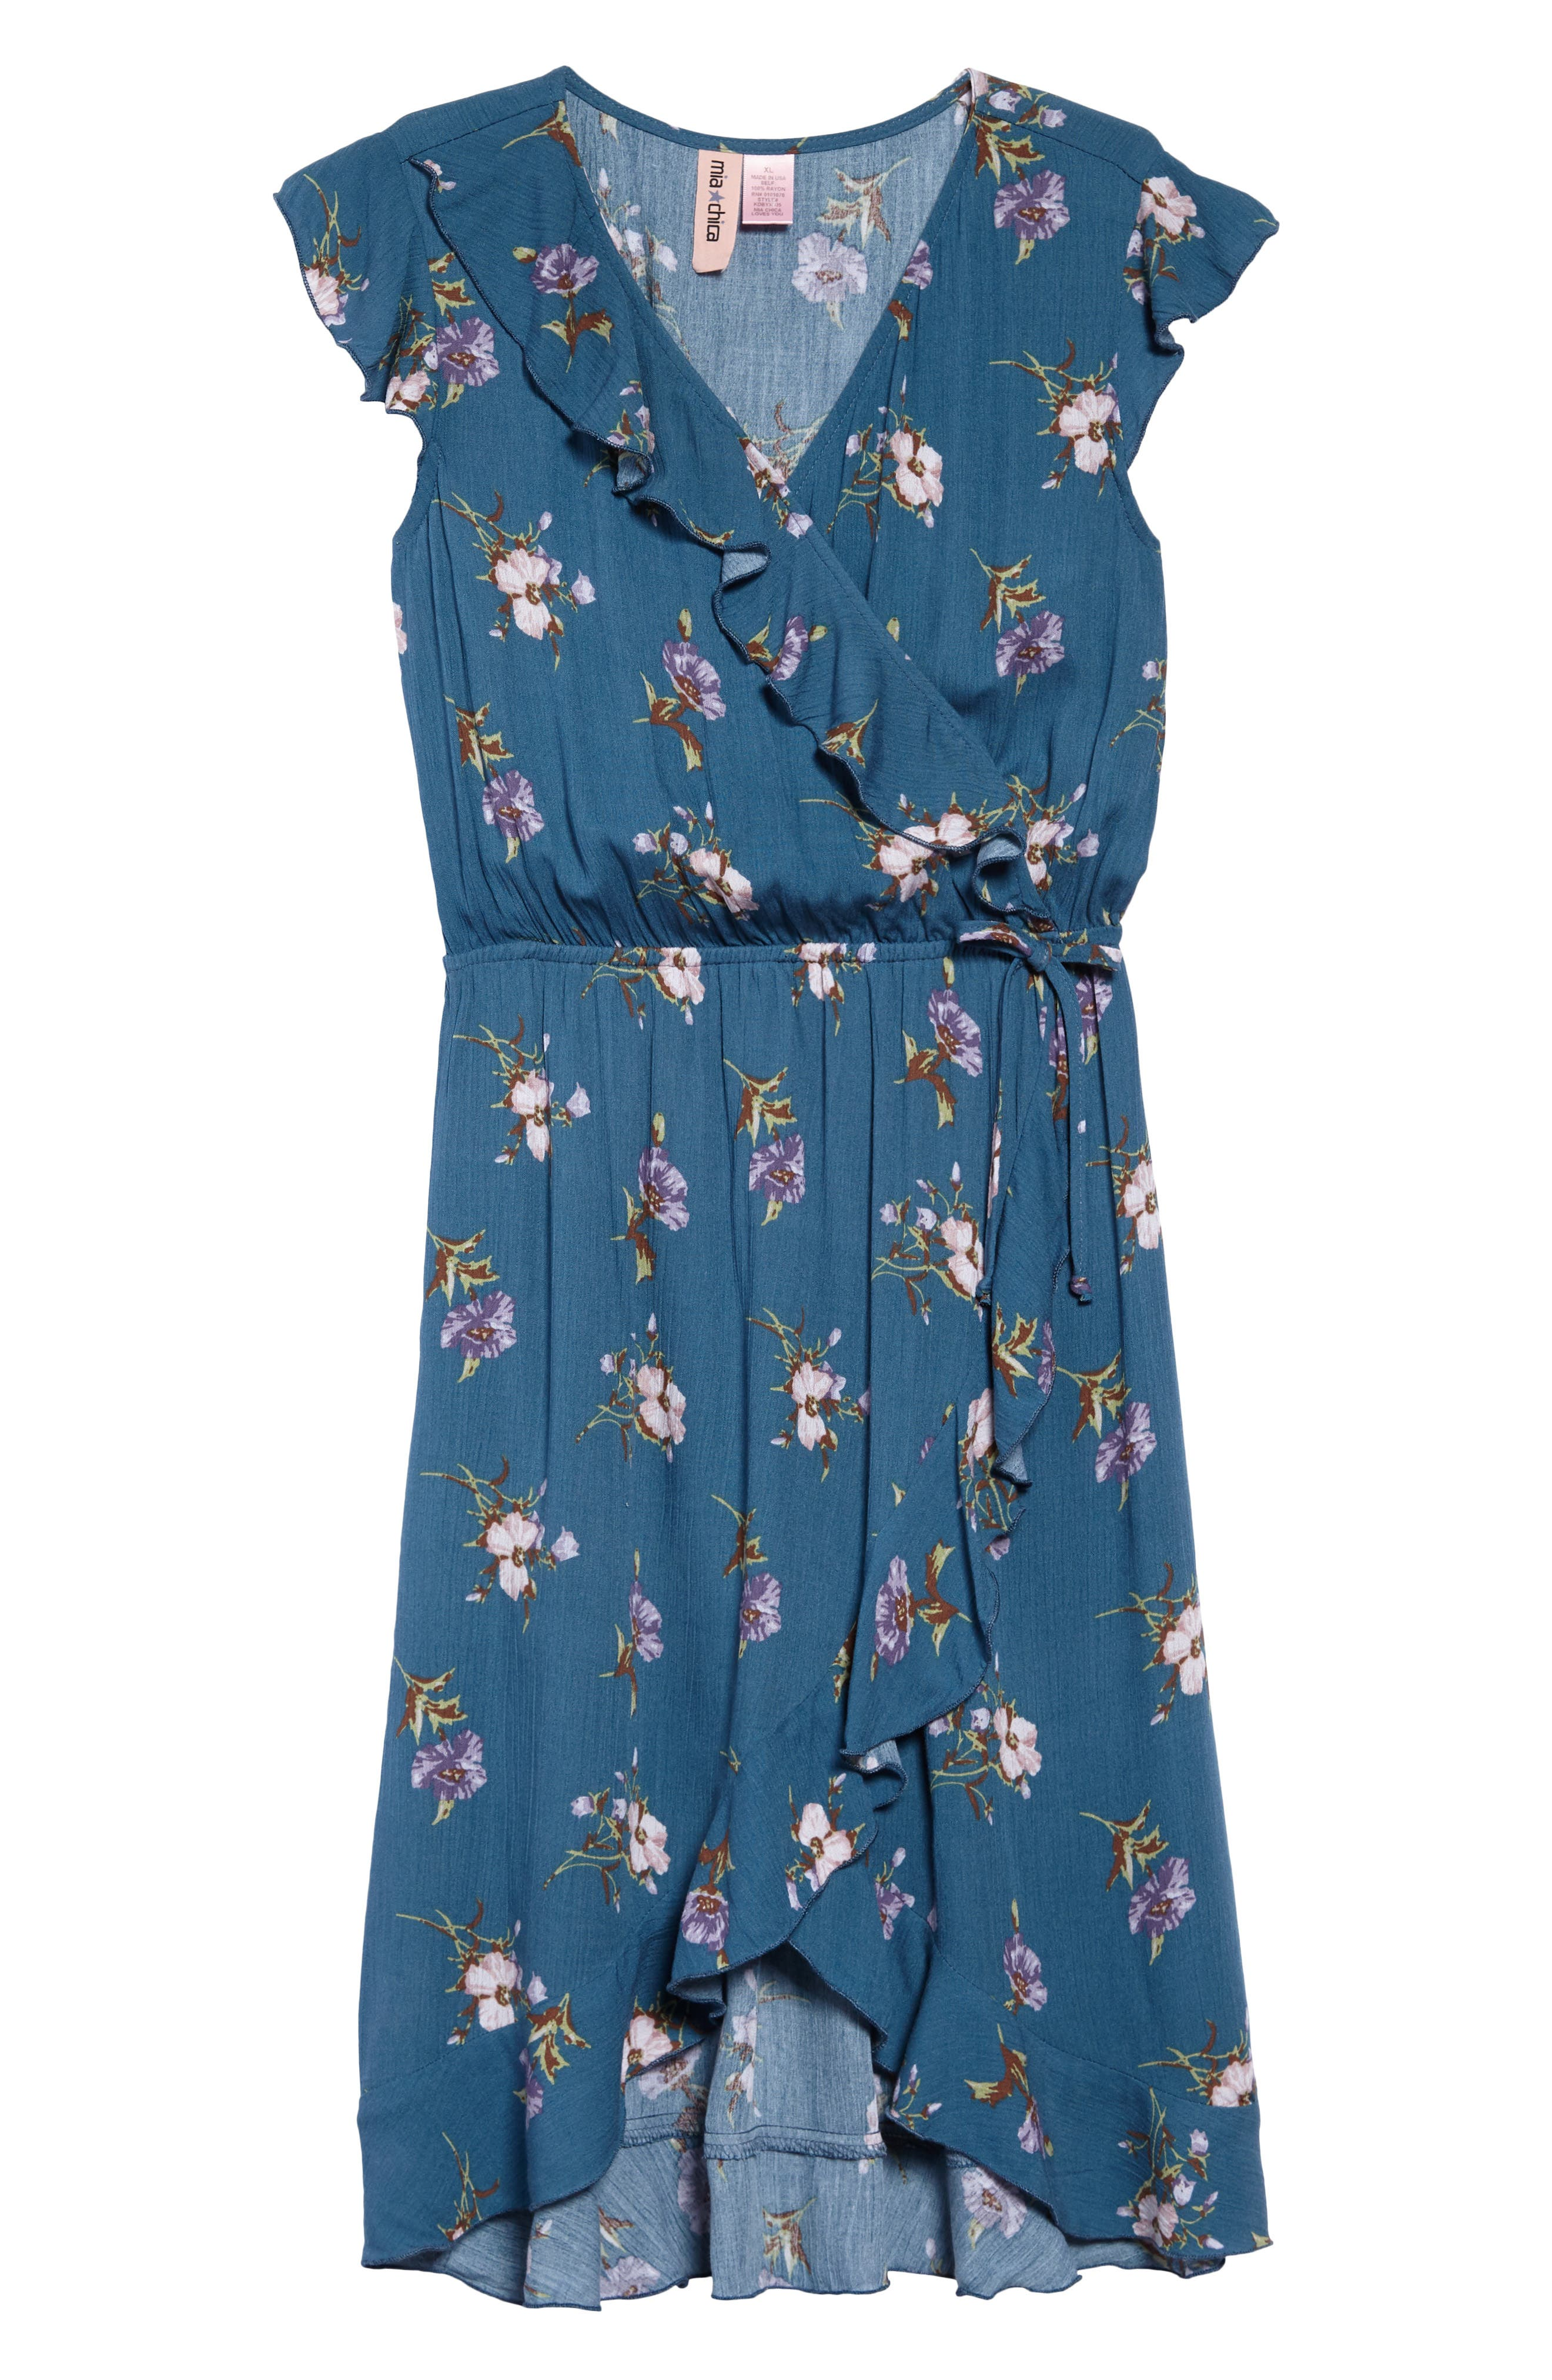 Floral Wrap Dress,                             Main thumbnail 1, color,                             474